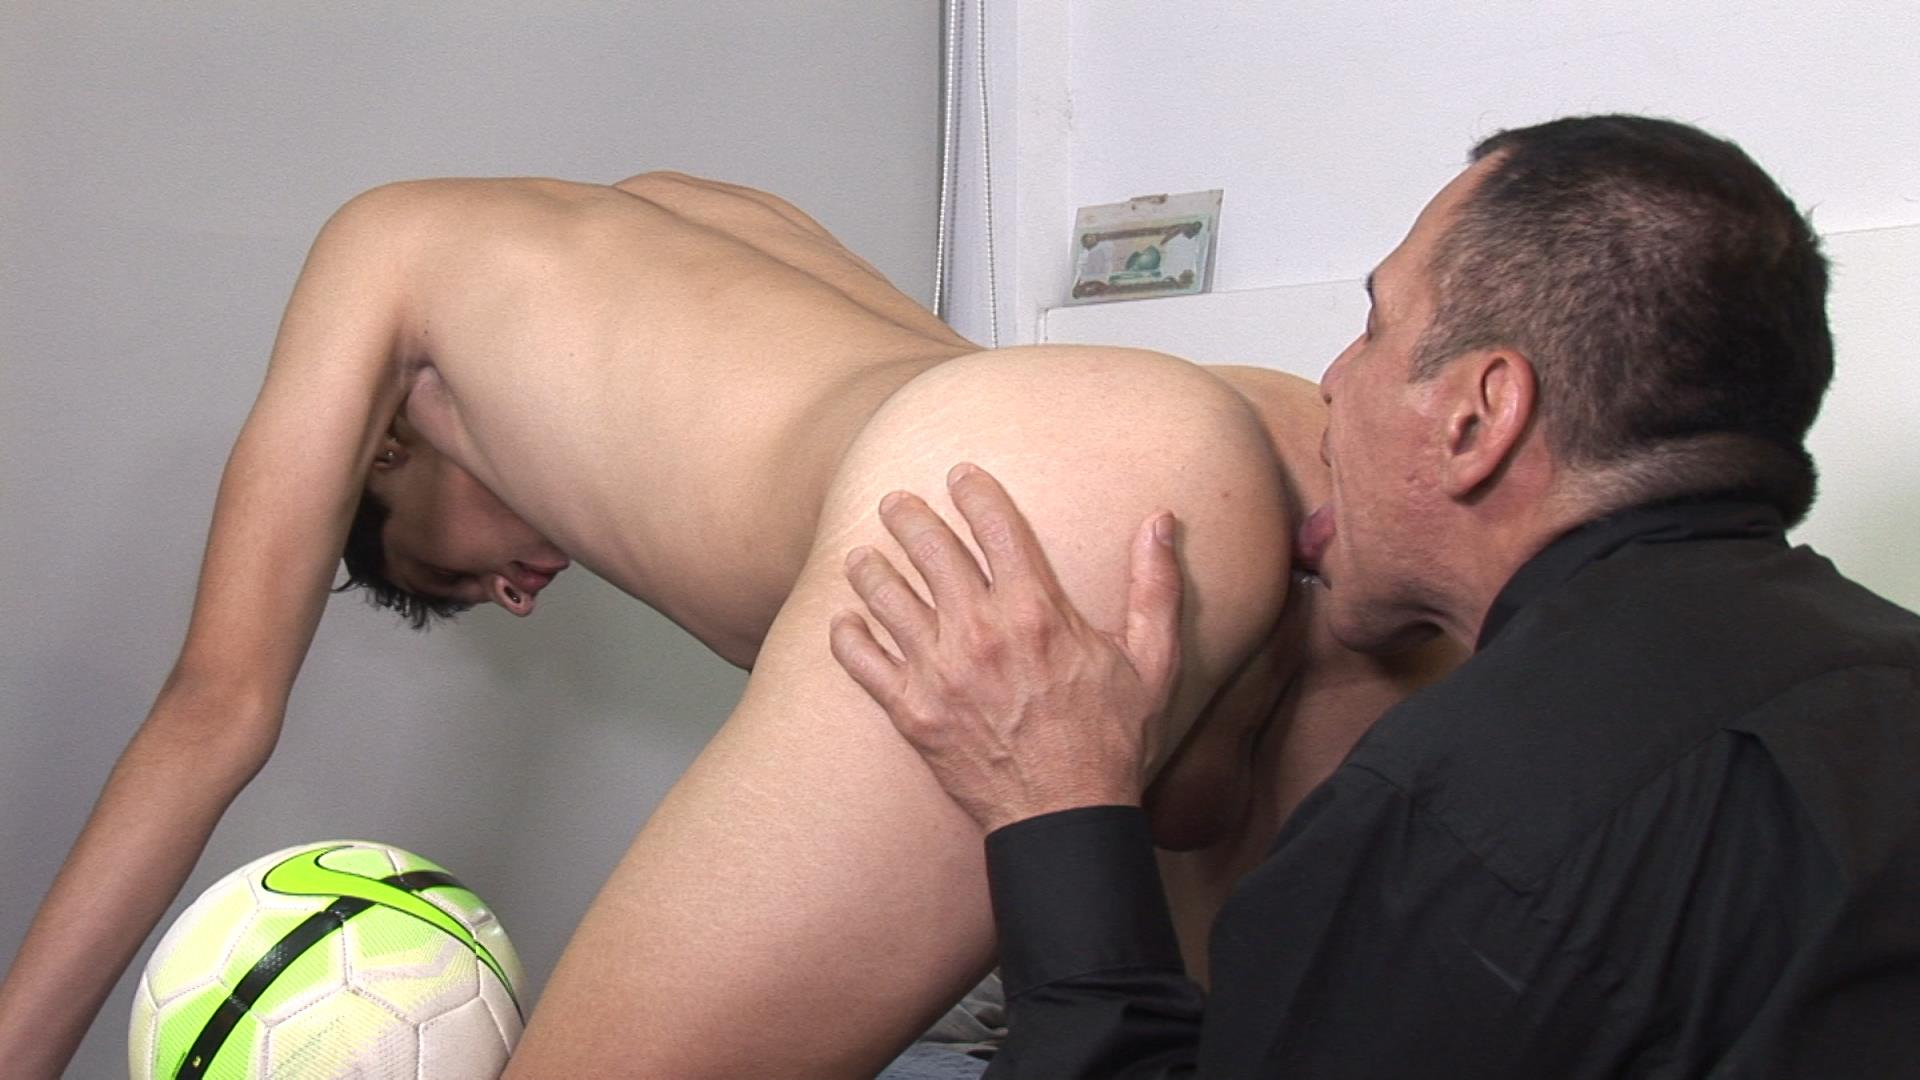 Bareback-Me-Daddy-Gay-Priest-Fucking-A-Student-13 Getting Barebacked By An Older Catholic Priest While In Boarding School